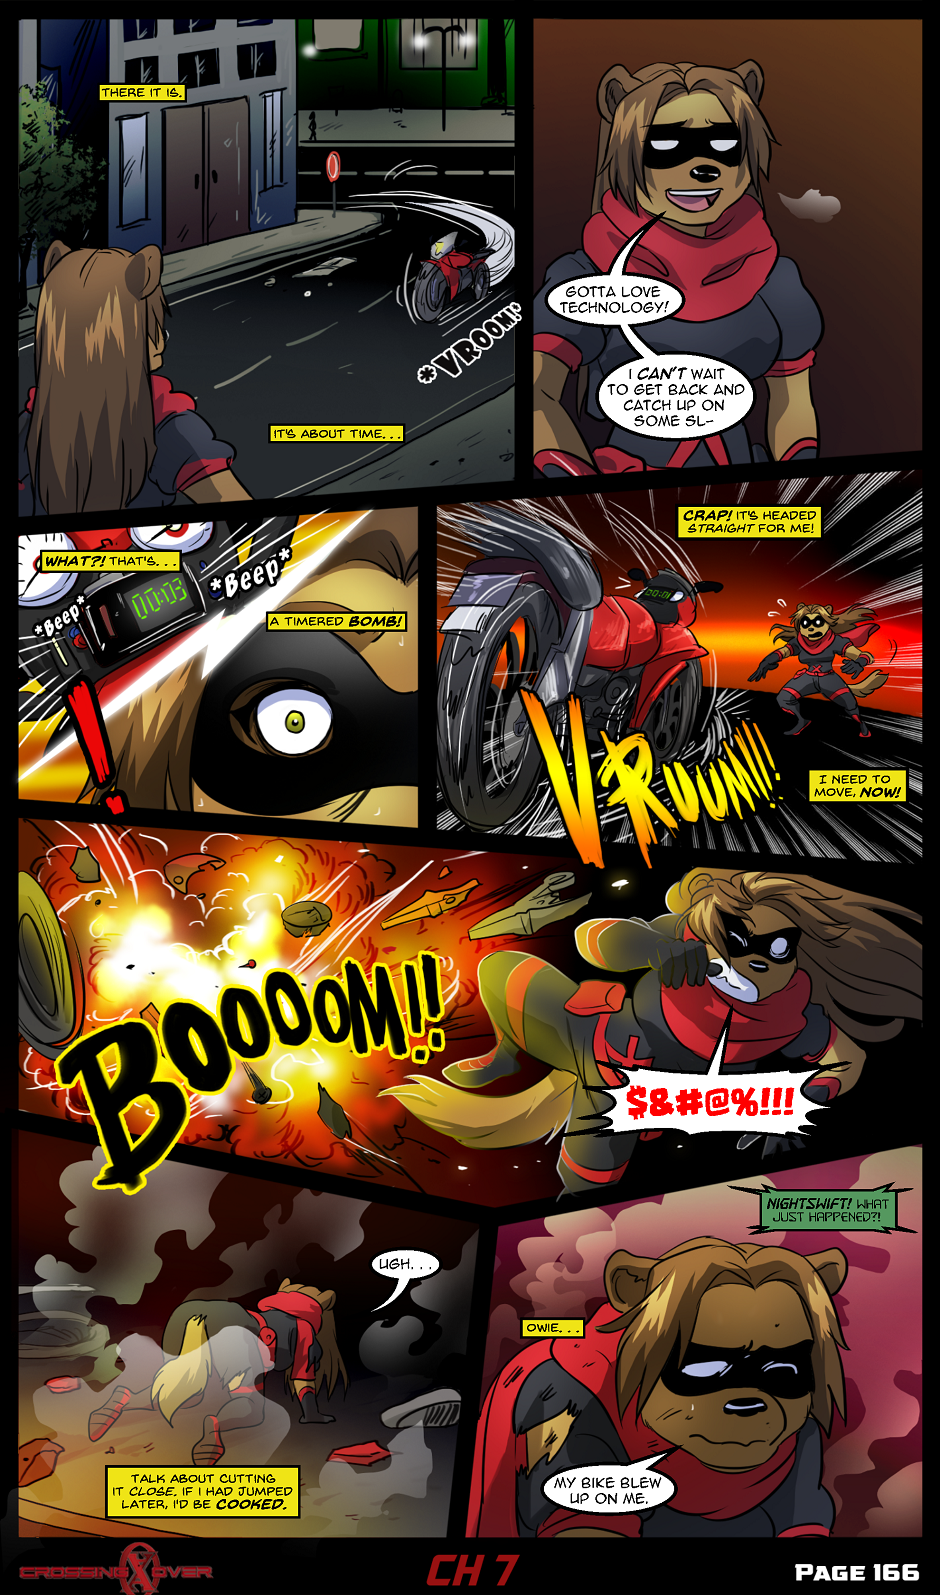 Page 166 (Ch 7)